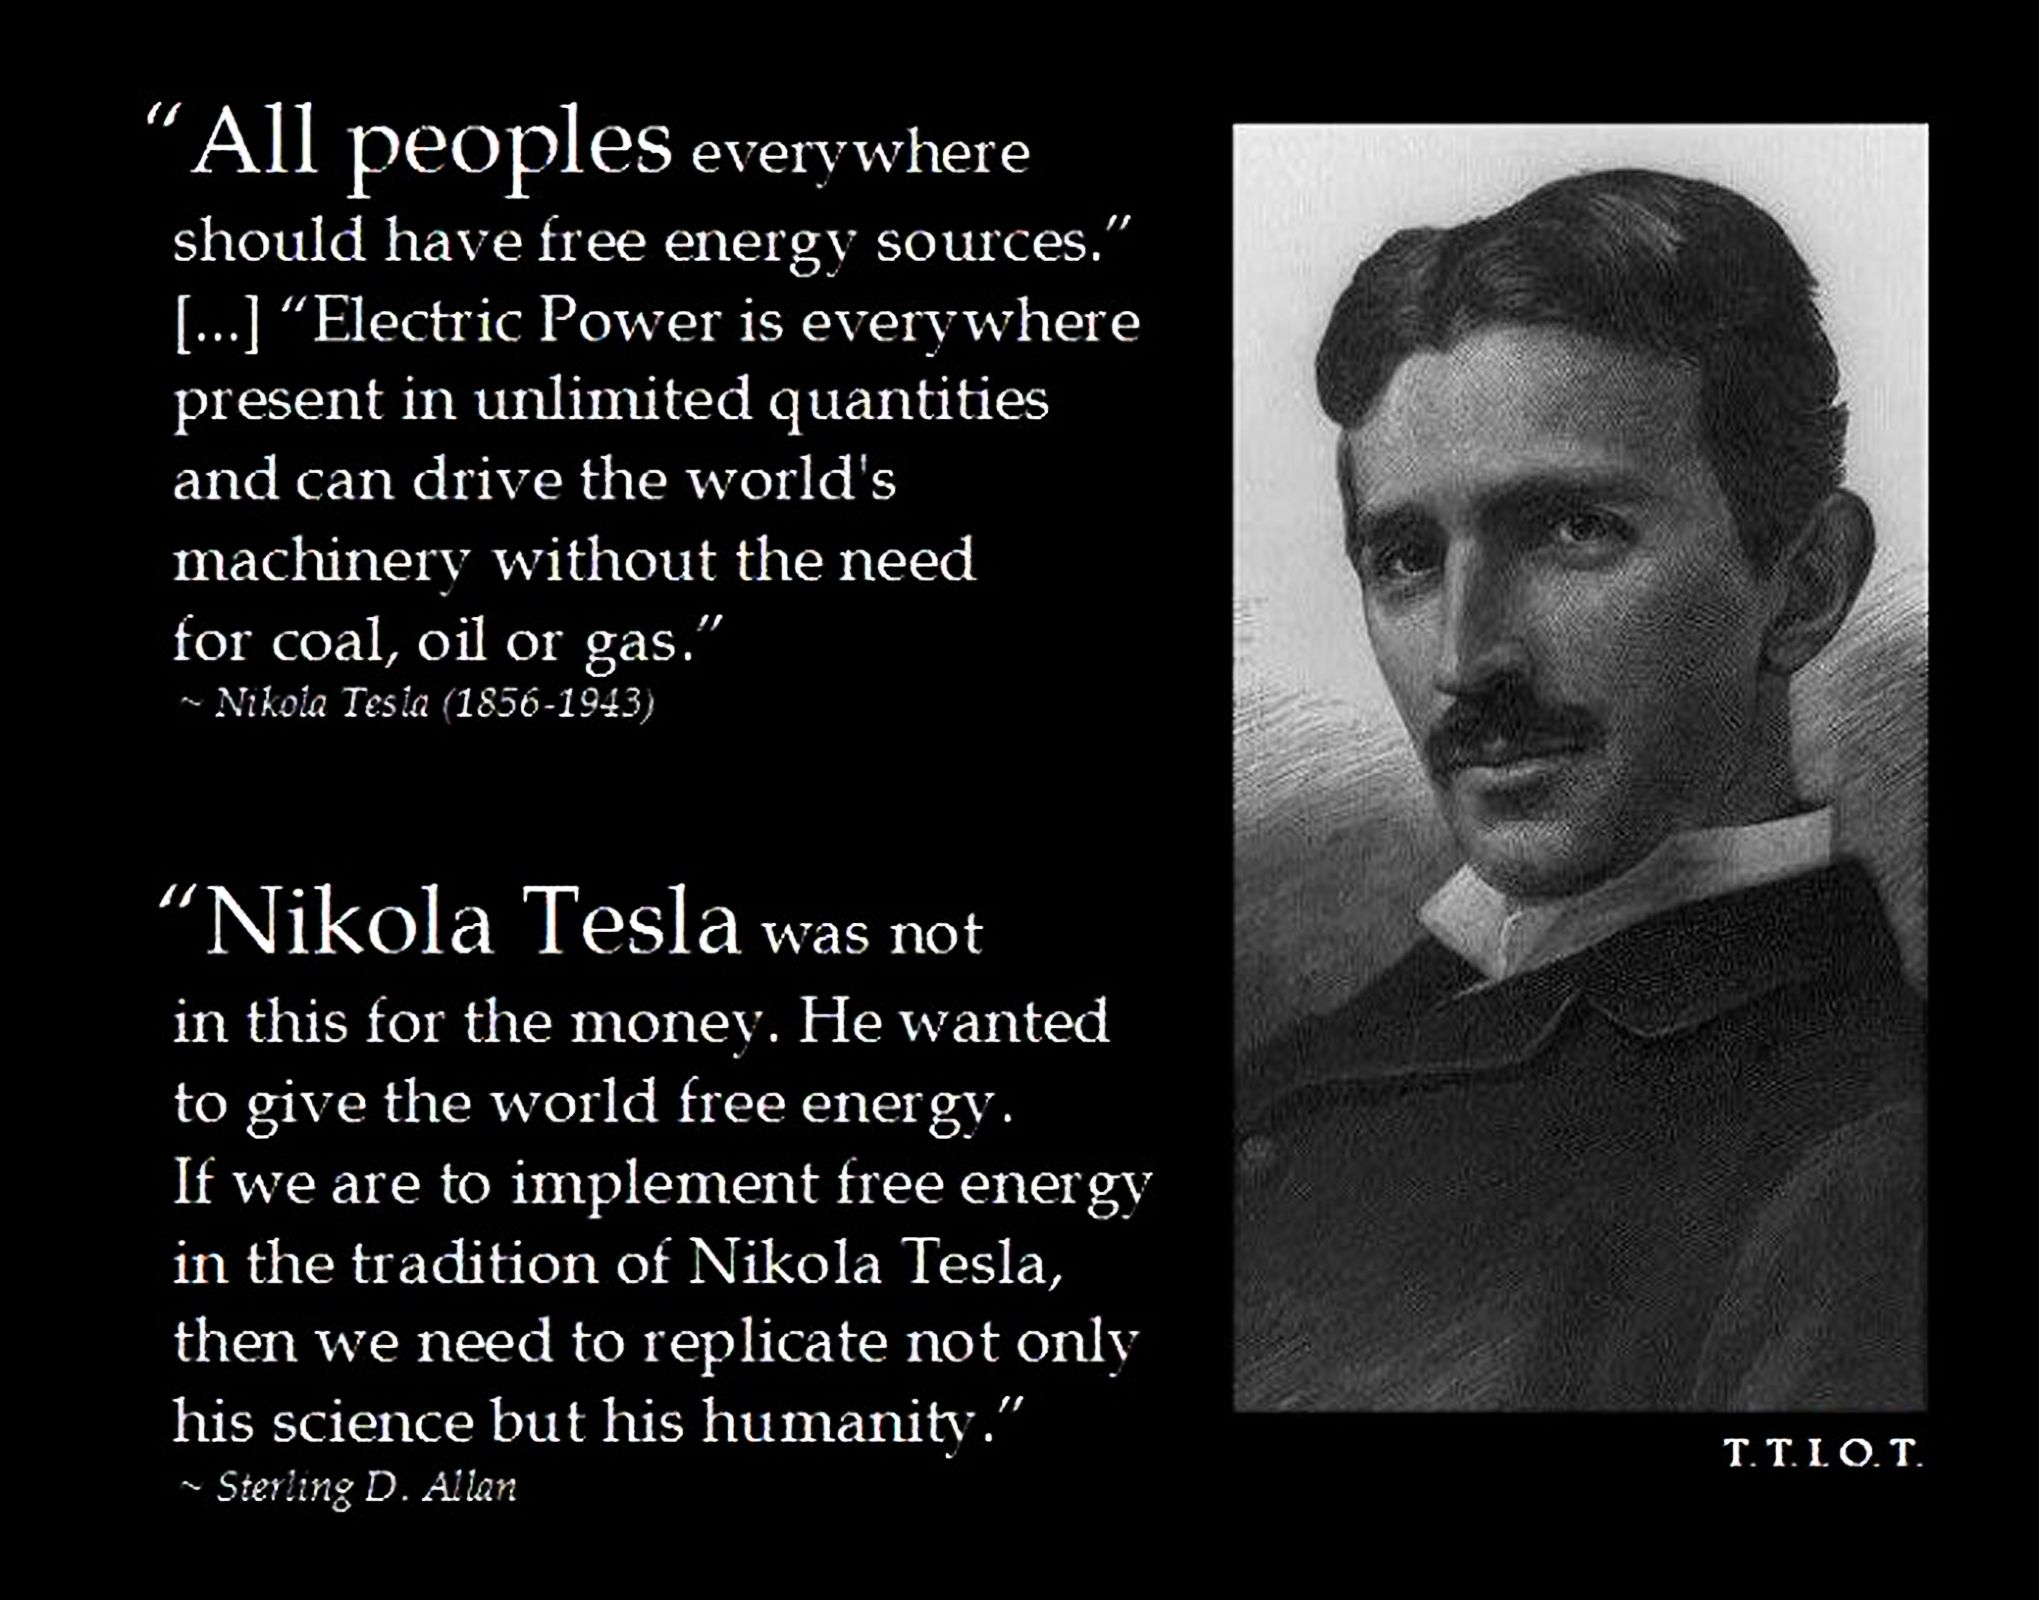 nikola tesla meme world would be like